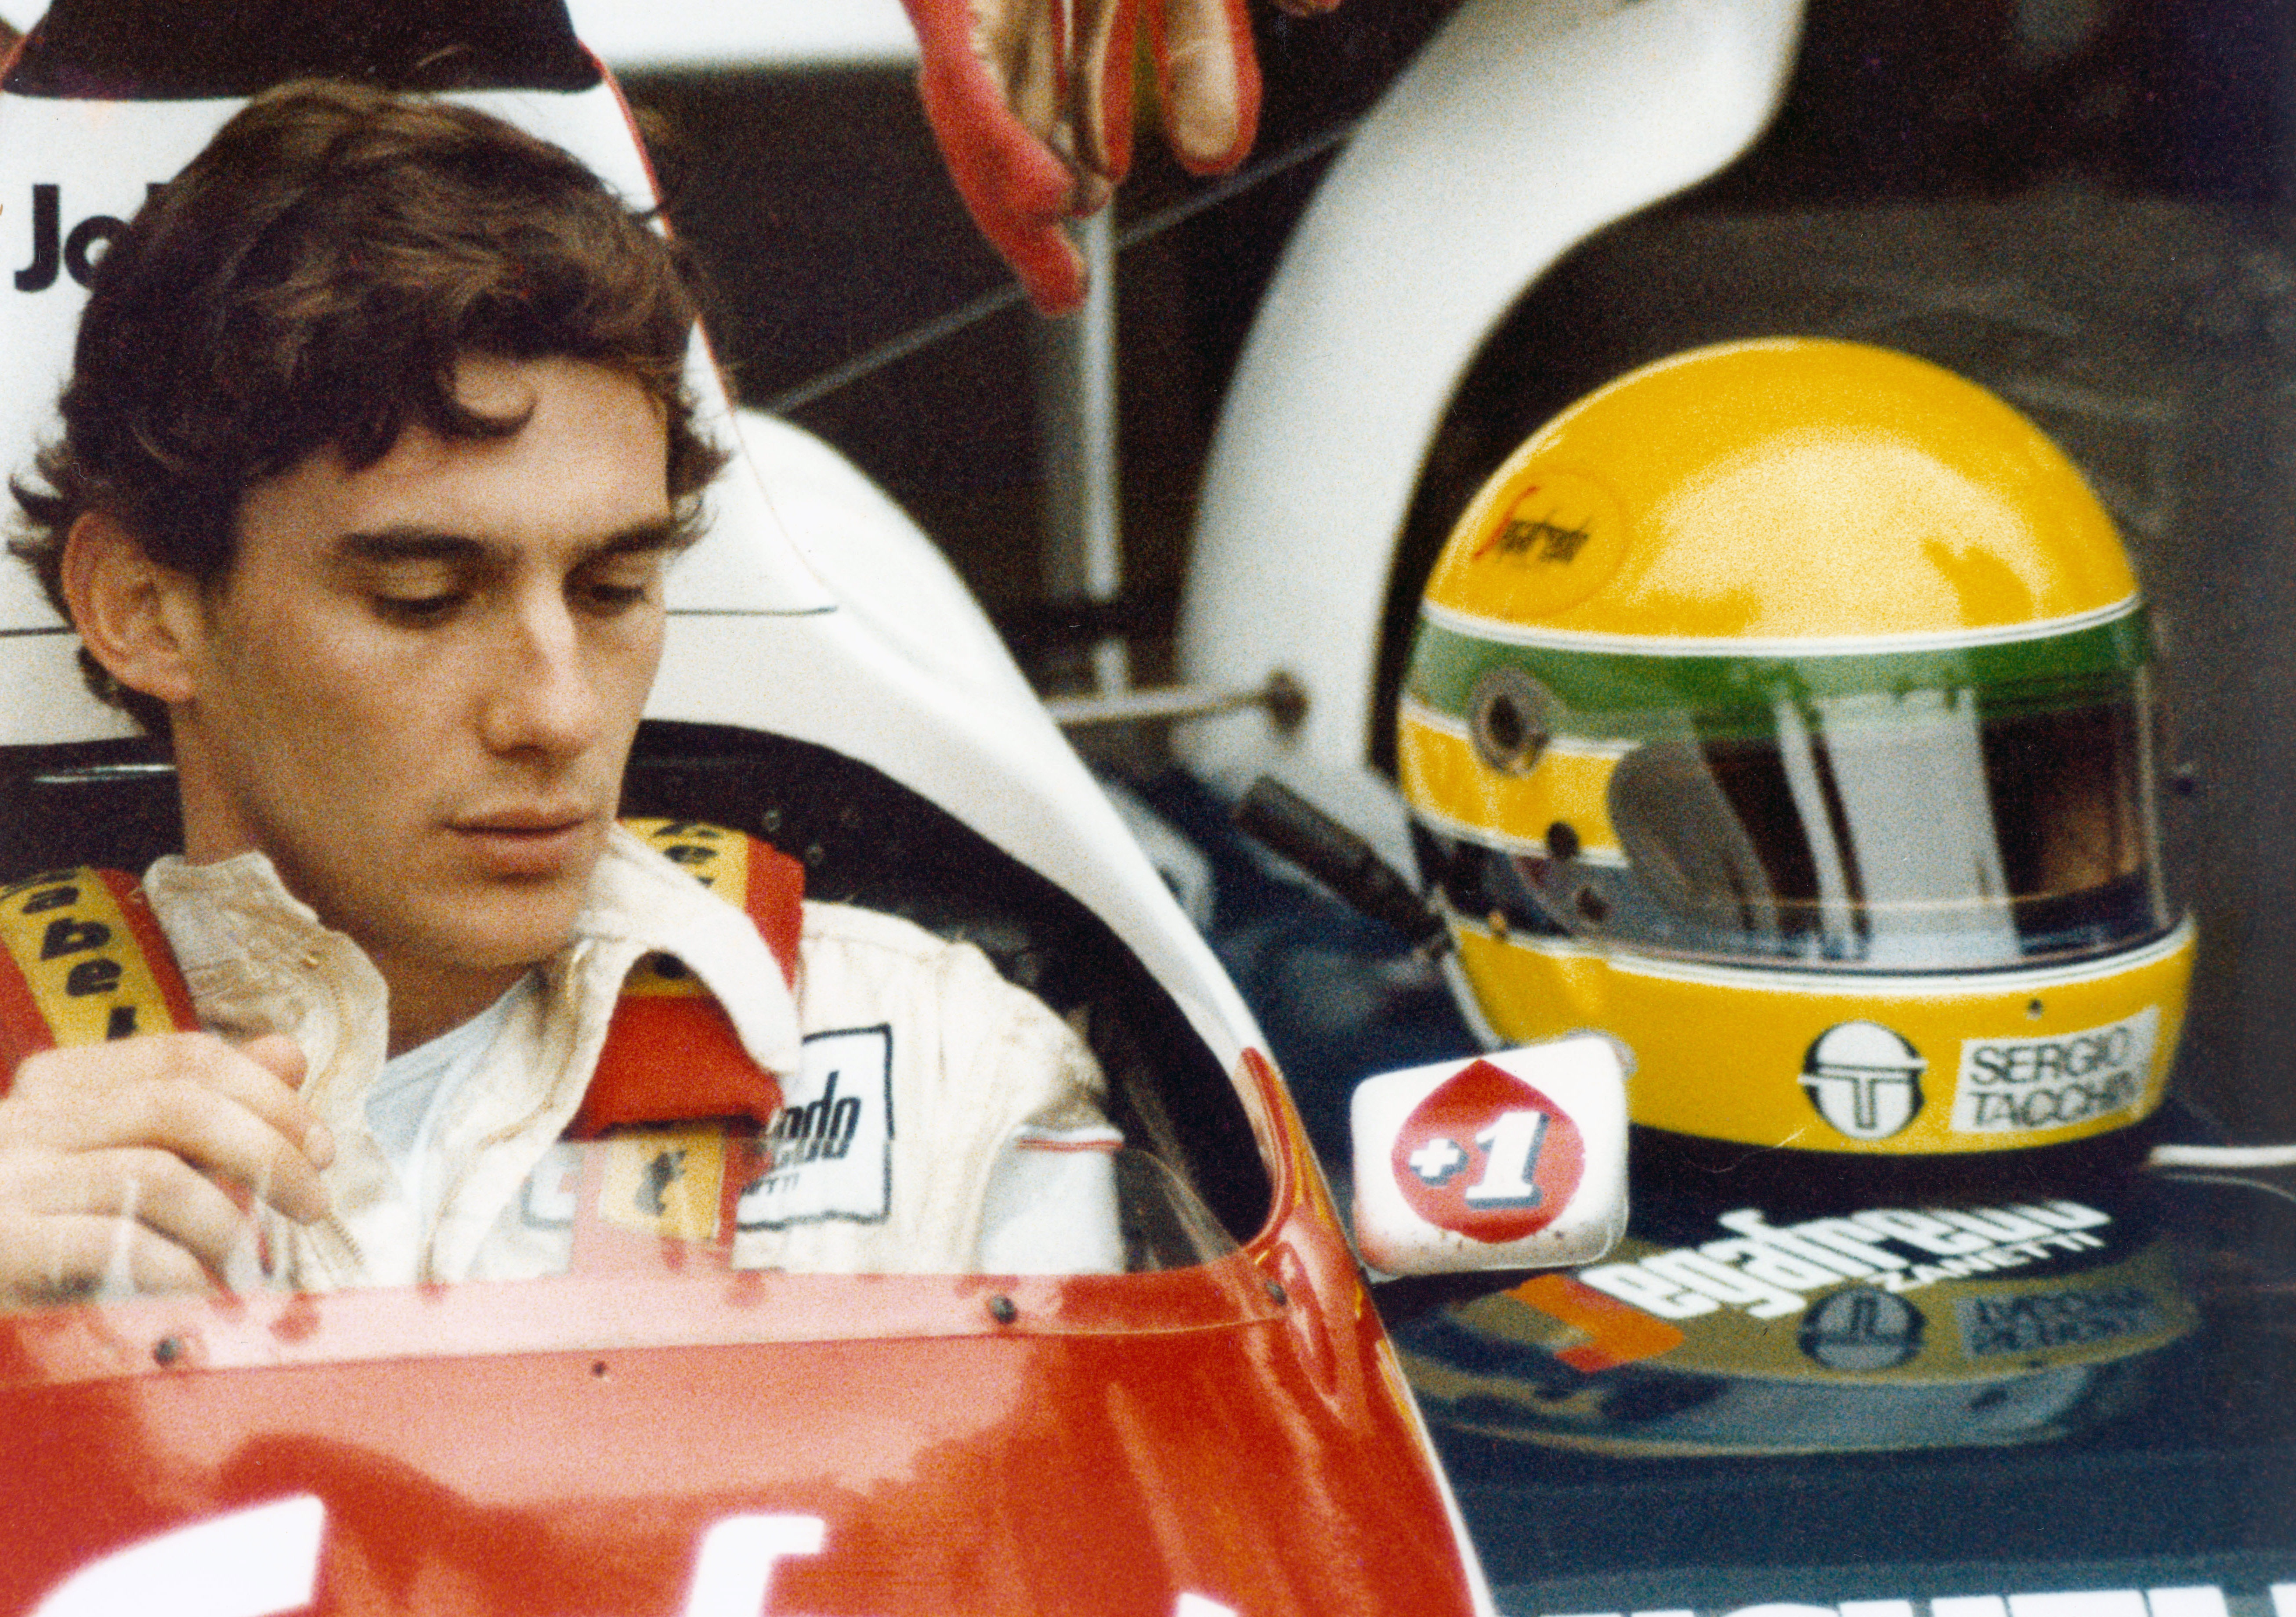 Ayrton Senna / Photo from flm´s website; http://www.sennamovie.com